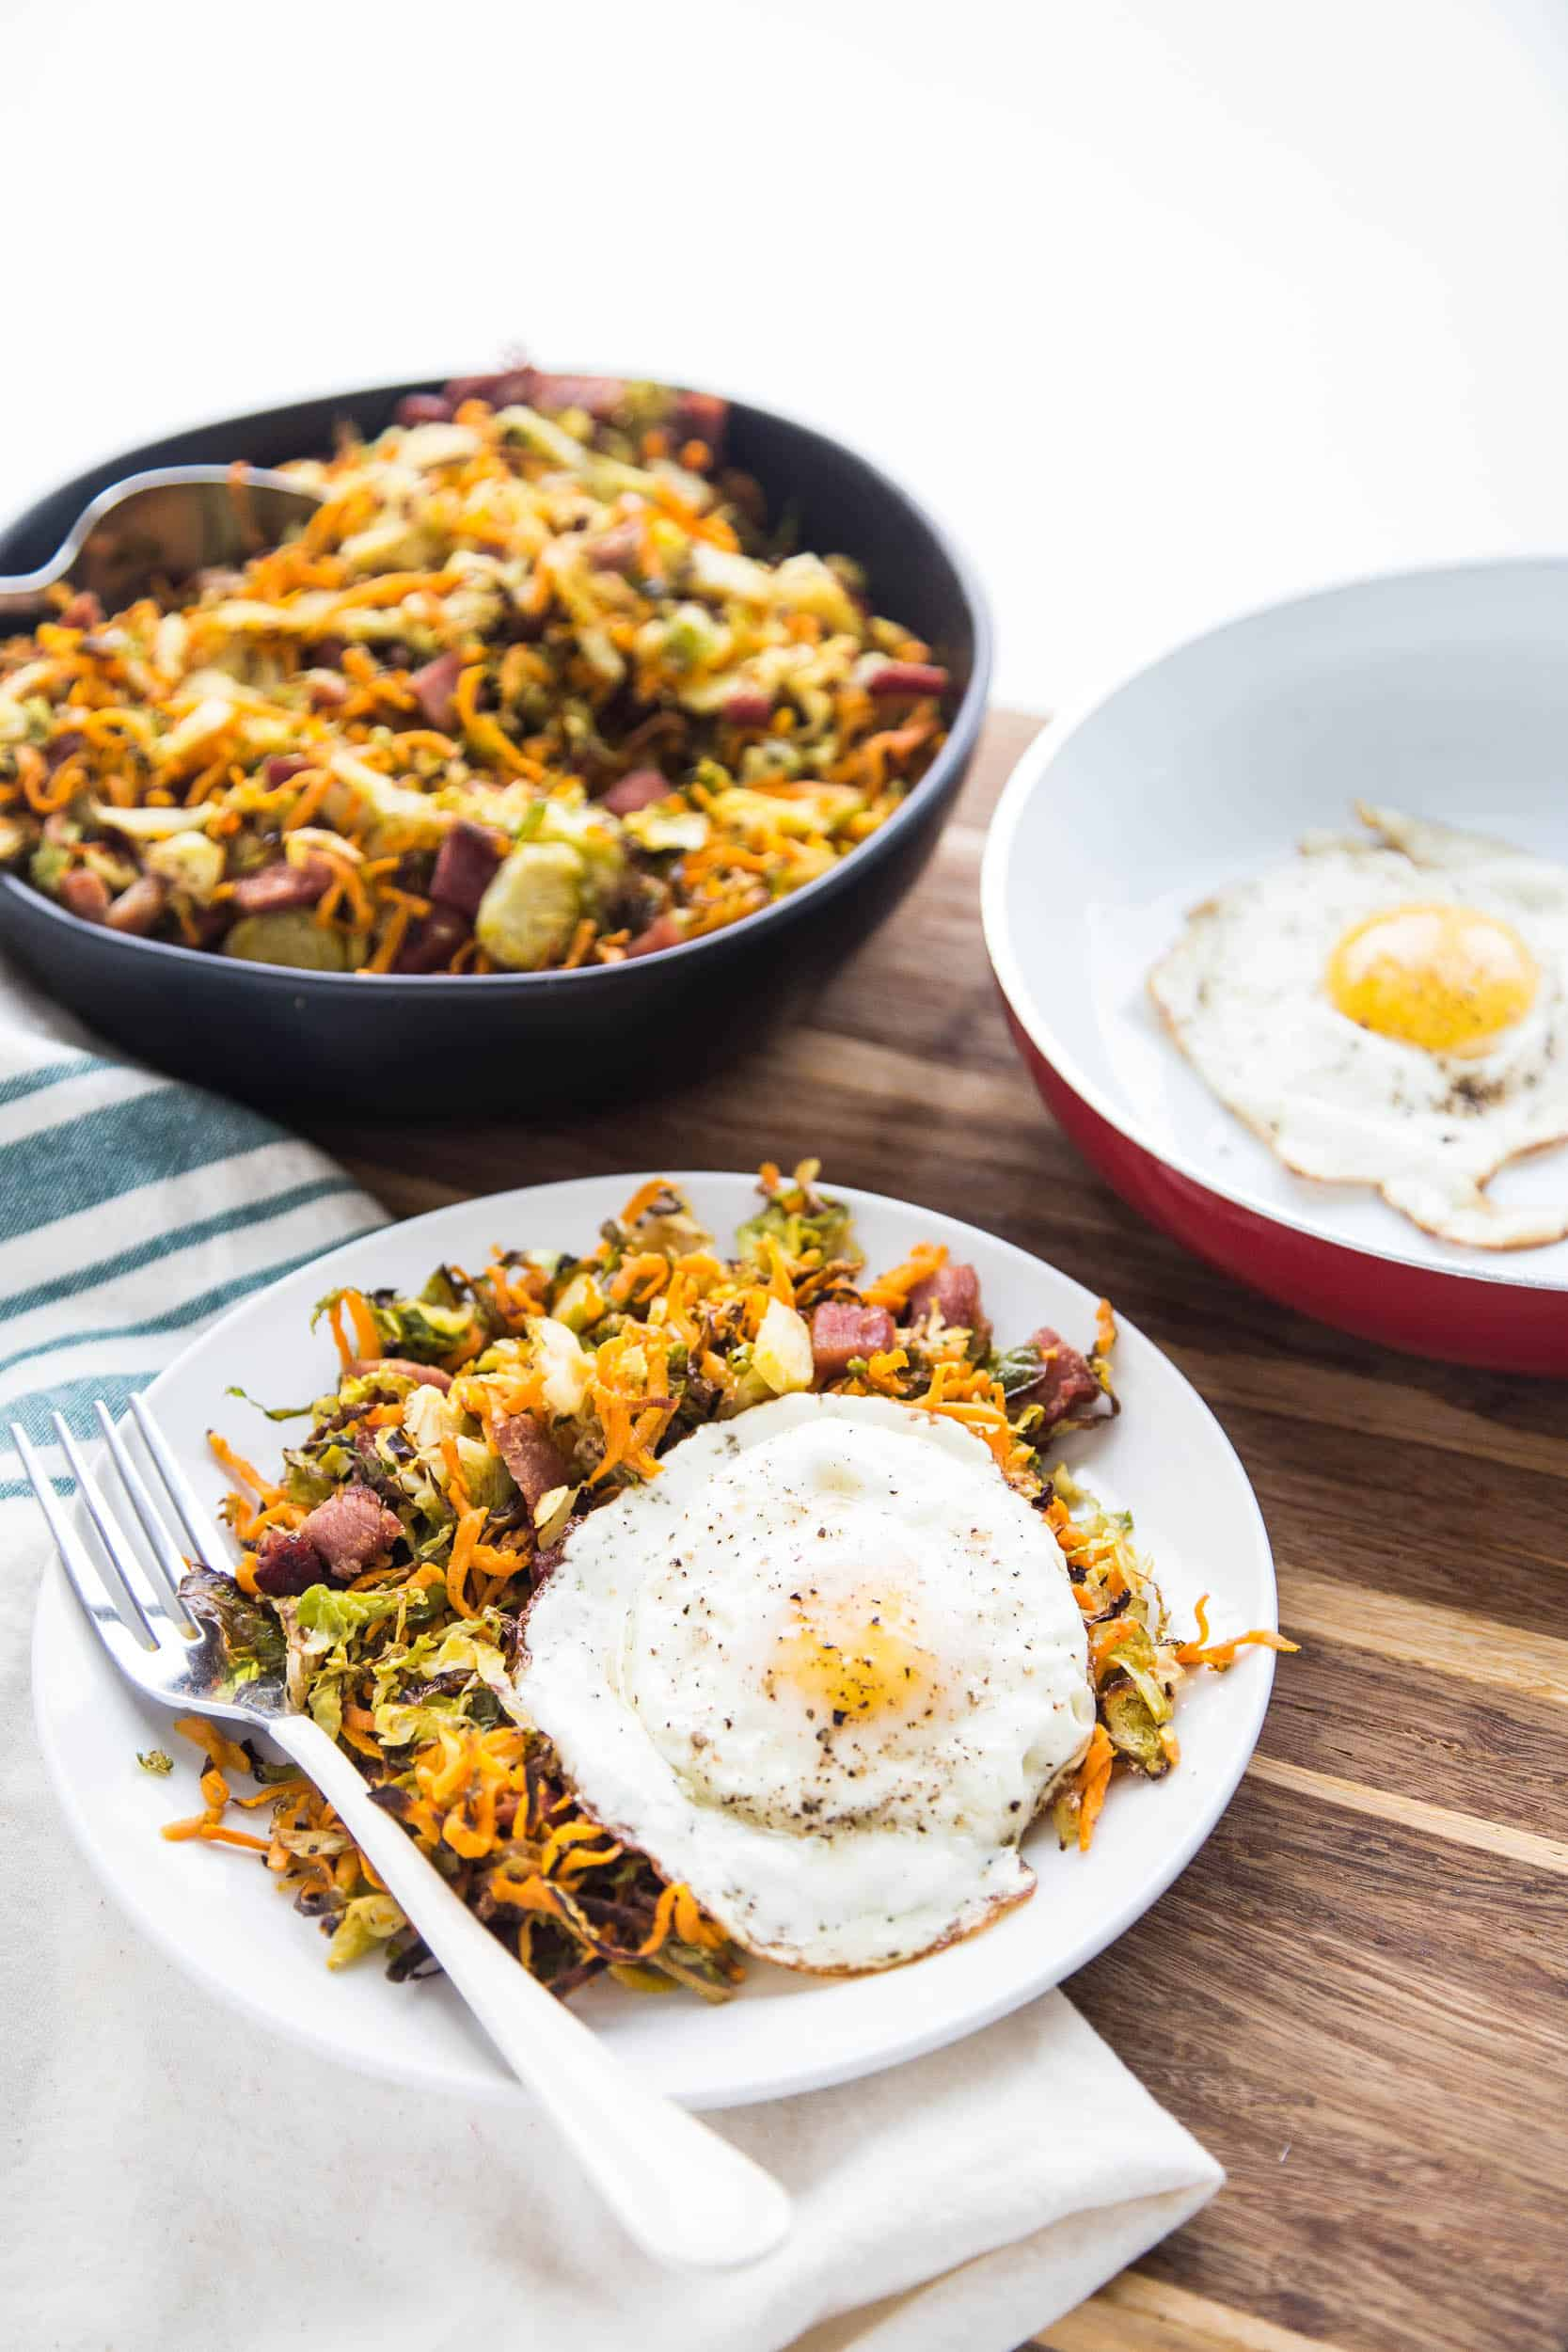 Roasted Ham & Shredded Brussels Sprout Hash | paleo recipes | breakfast recipes | leftover ham recipes | brunch recipes | gluten-free recipes | dairy-free recipes | perrysplate.com